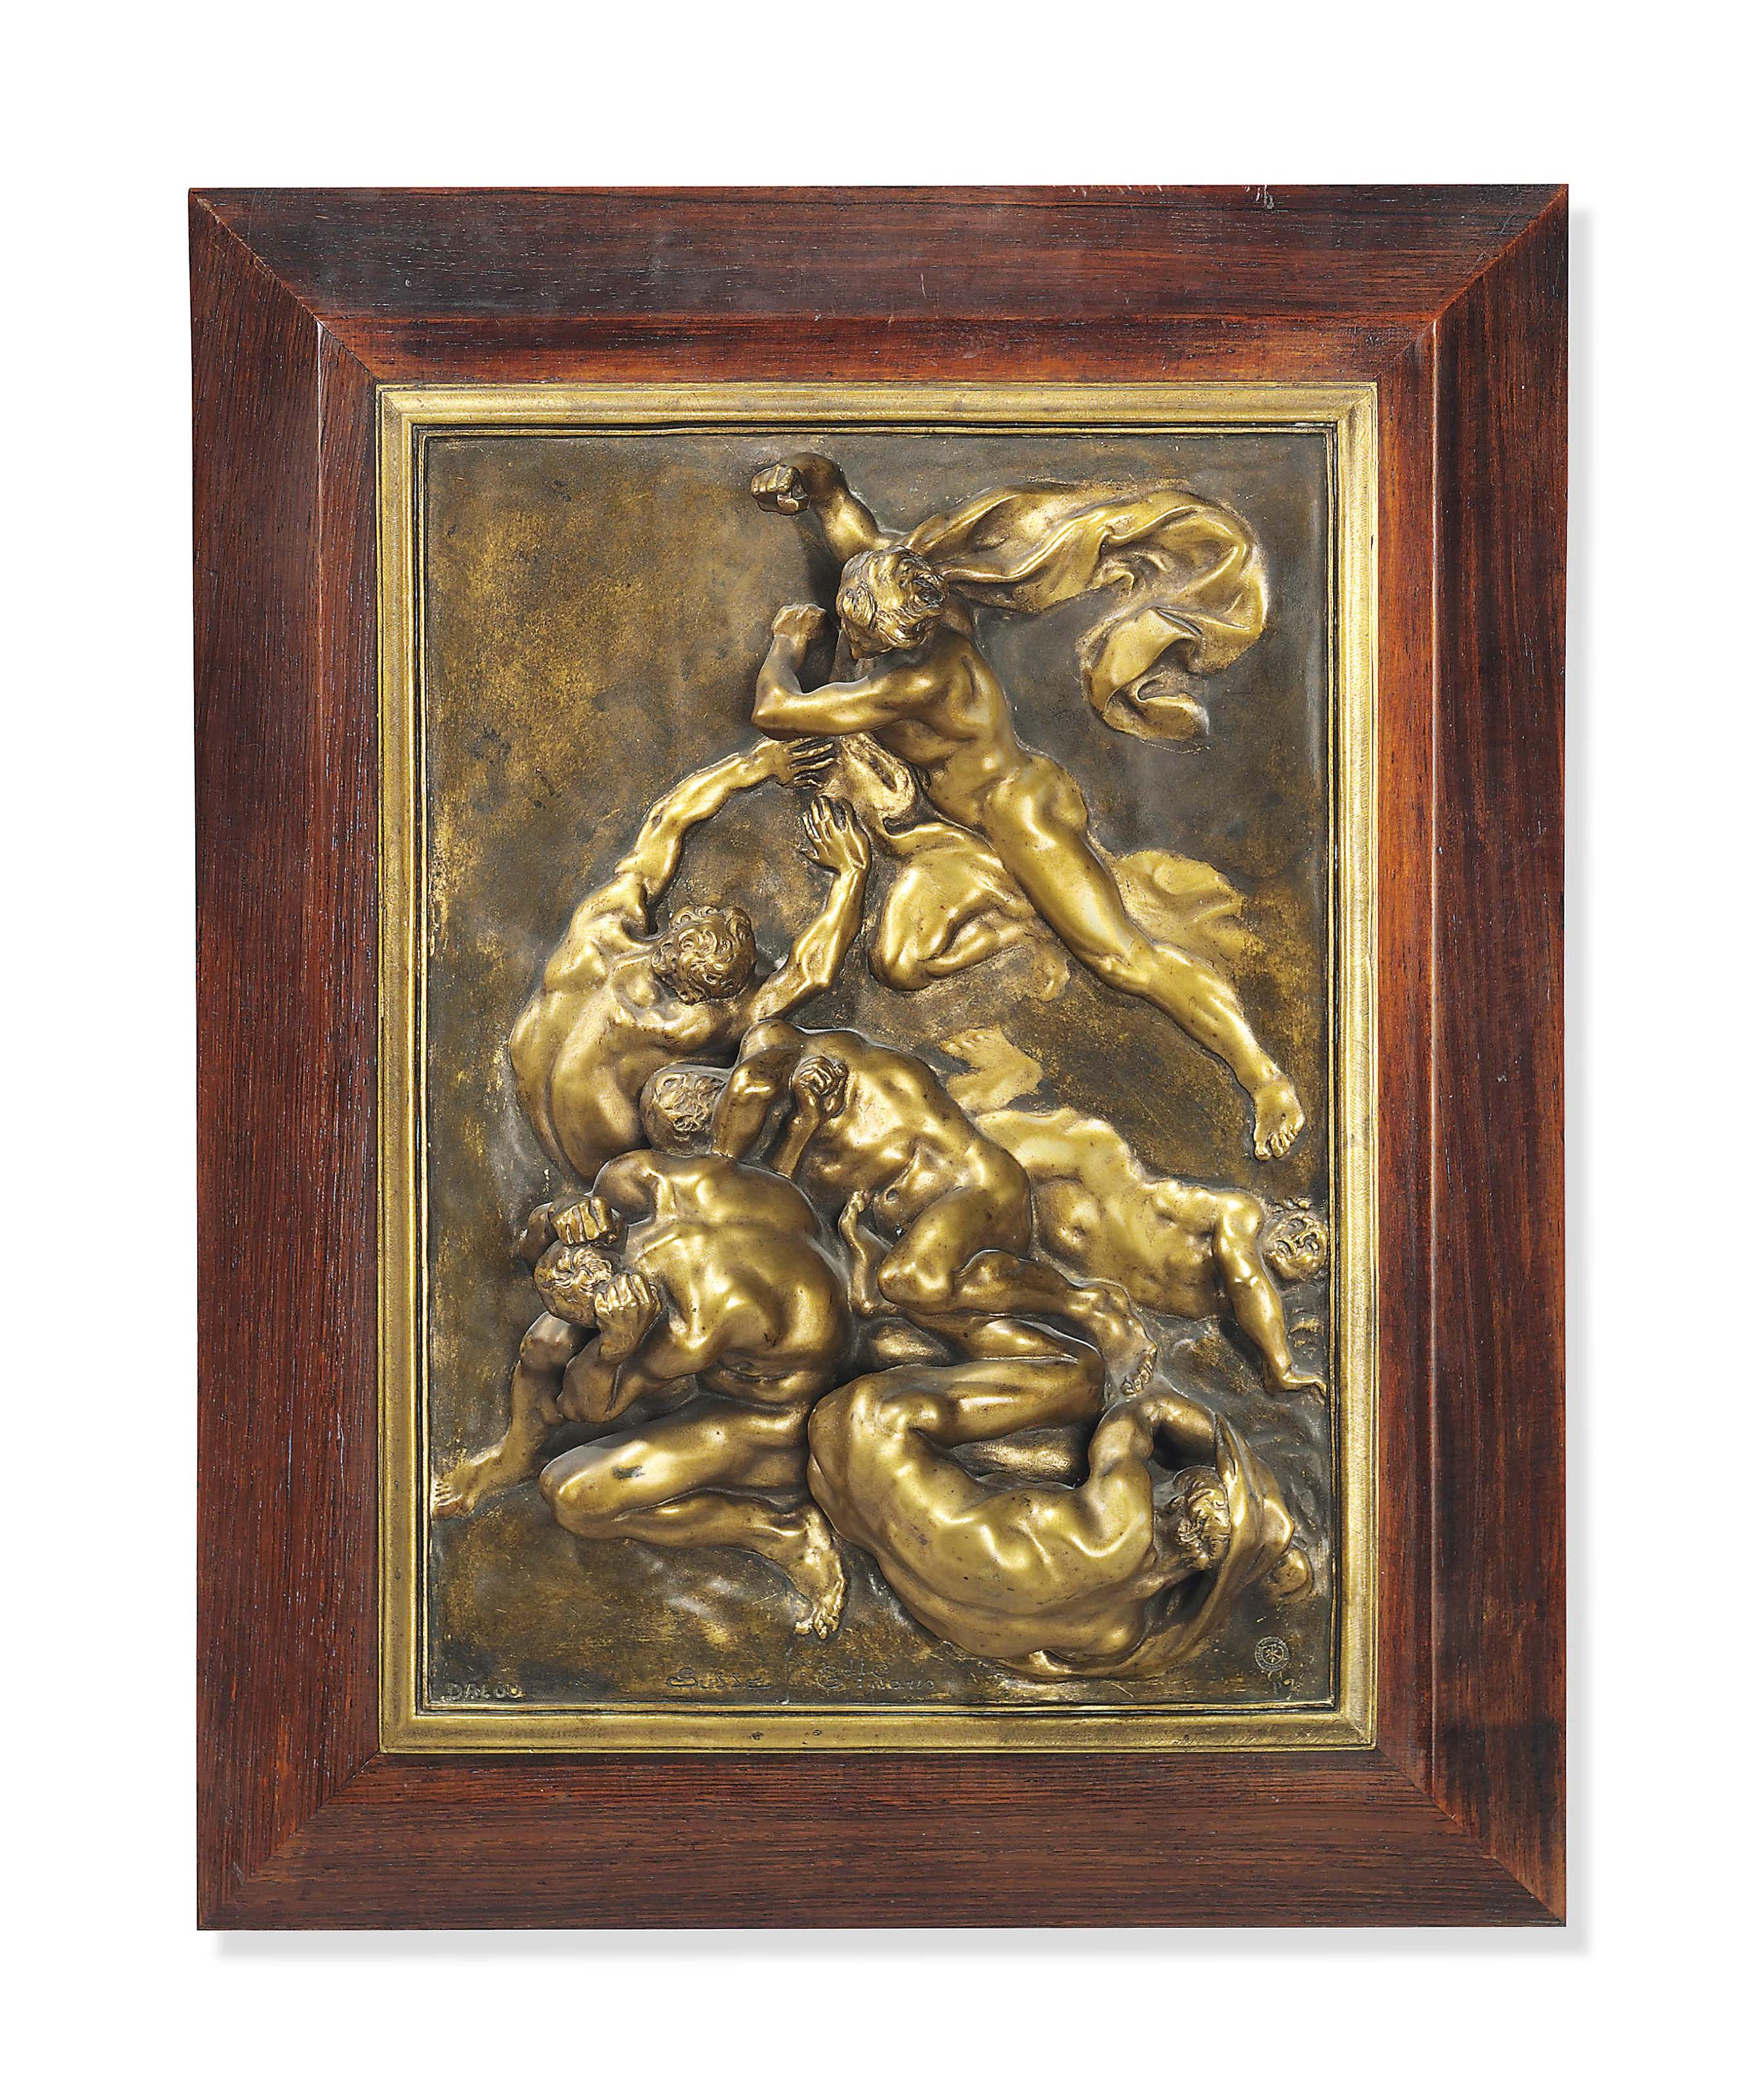 A FRENCH GILT BRONZE RELIEF PL